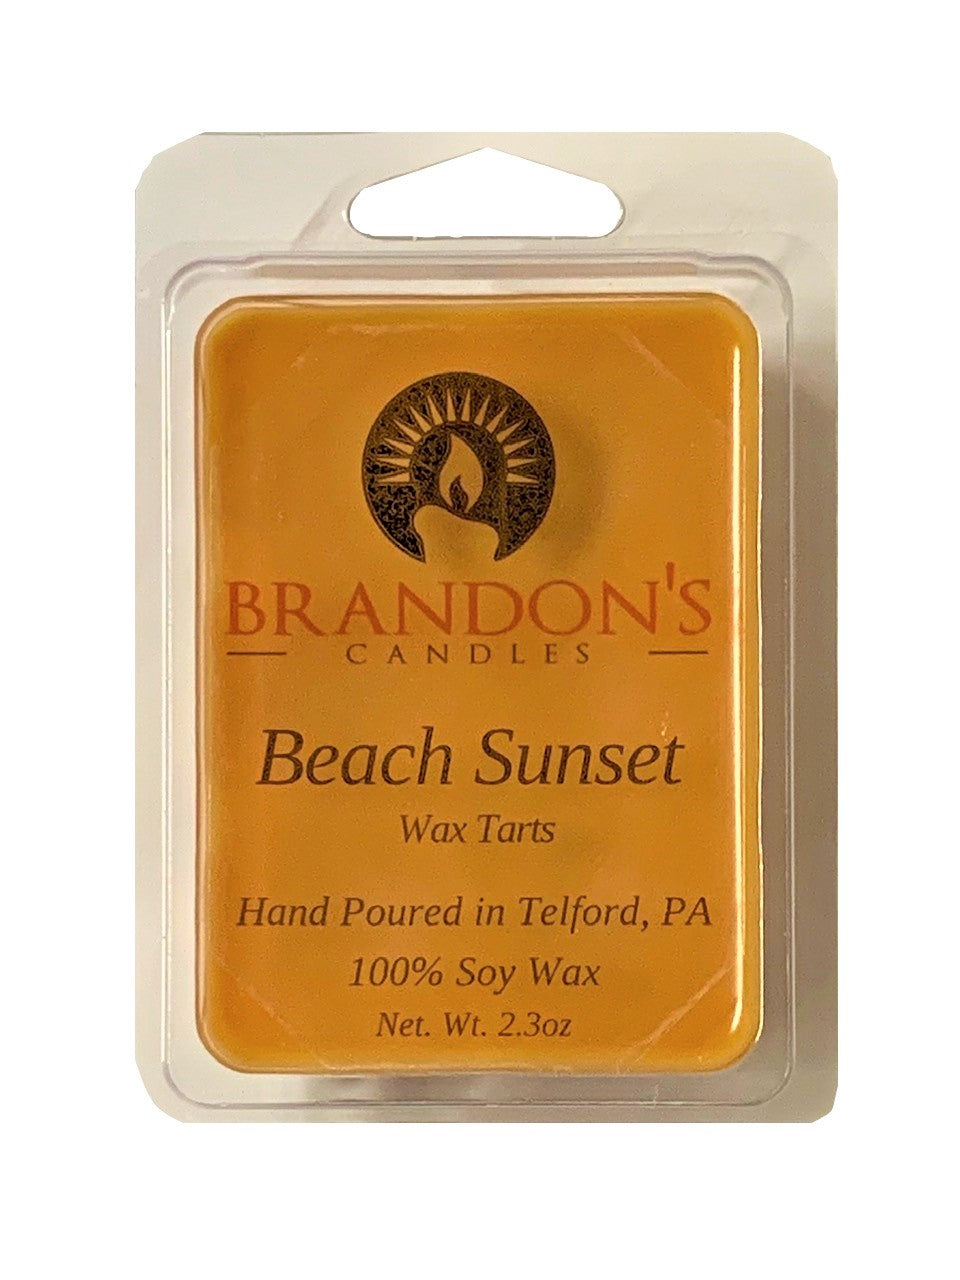 Beach Sunset Scented, Orange Colored Soy Wax Tart, 2.3 oz